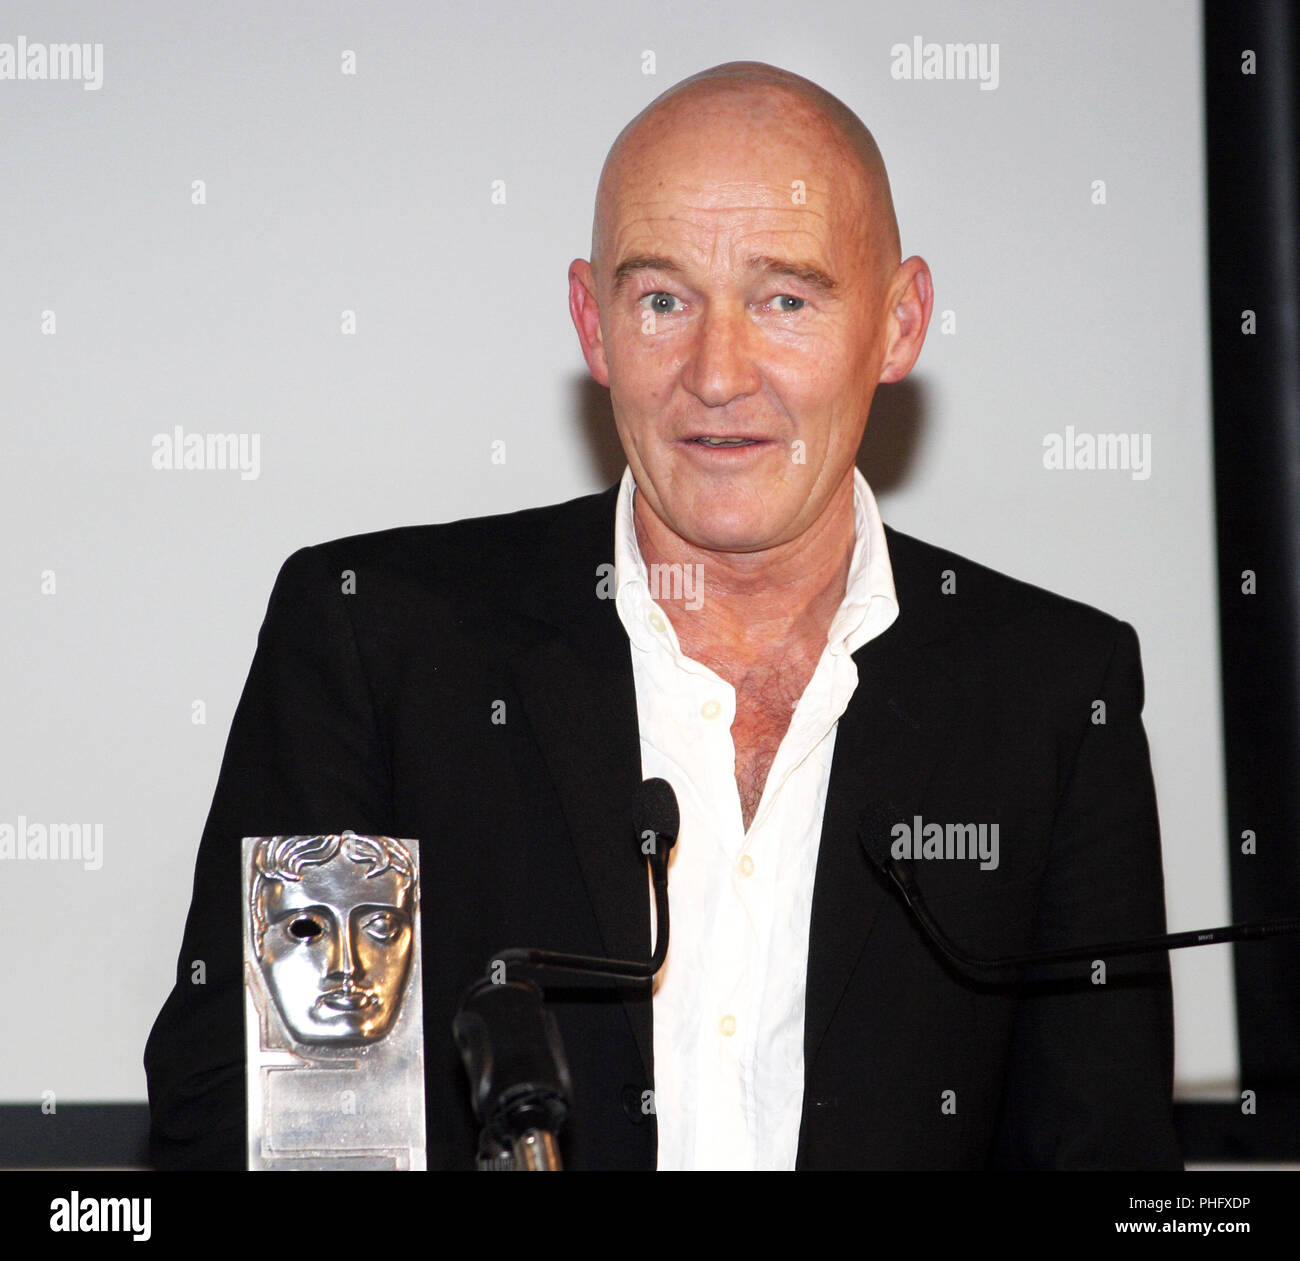 David Hayman is a well known, and respected, actor who has appeared in many films and dramas on television. He also appears on stage and now is a presenter fronting informative, historical documentaries about his home city, Glasgow, and Scotland in general. He has also sat in the directors seat for 3 films! Stock Photo